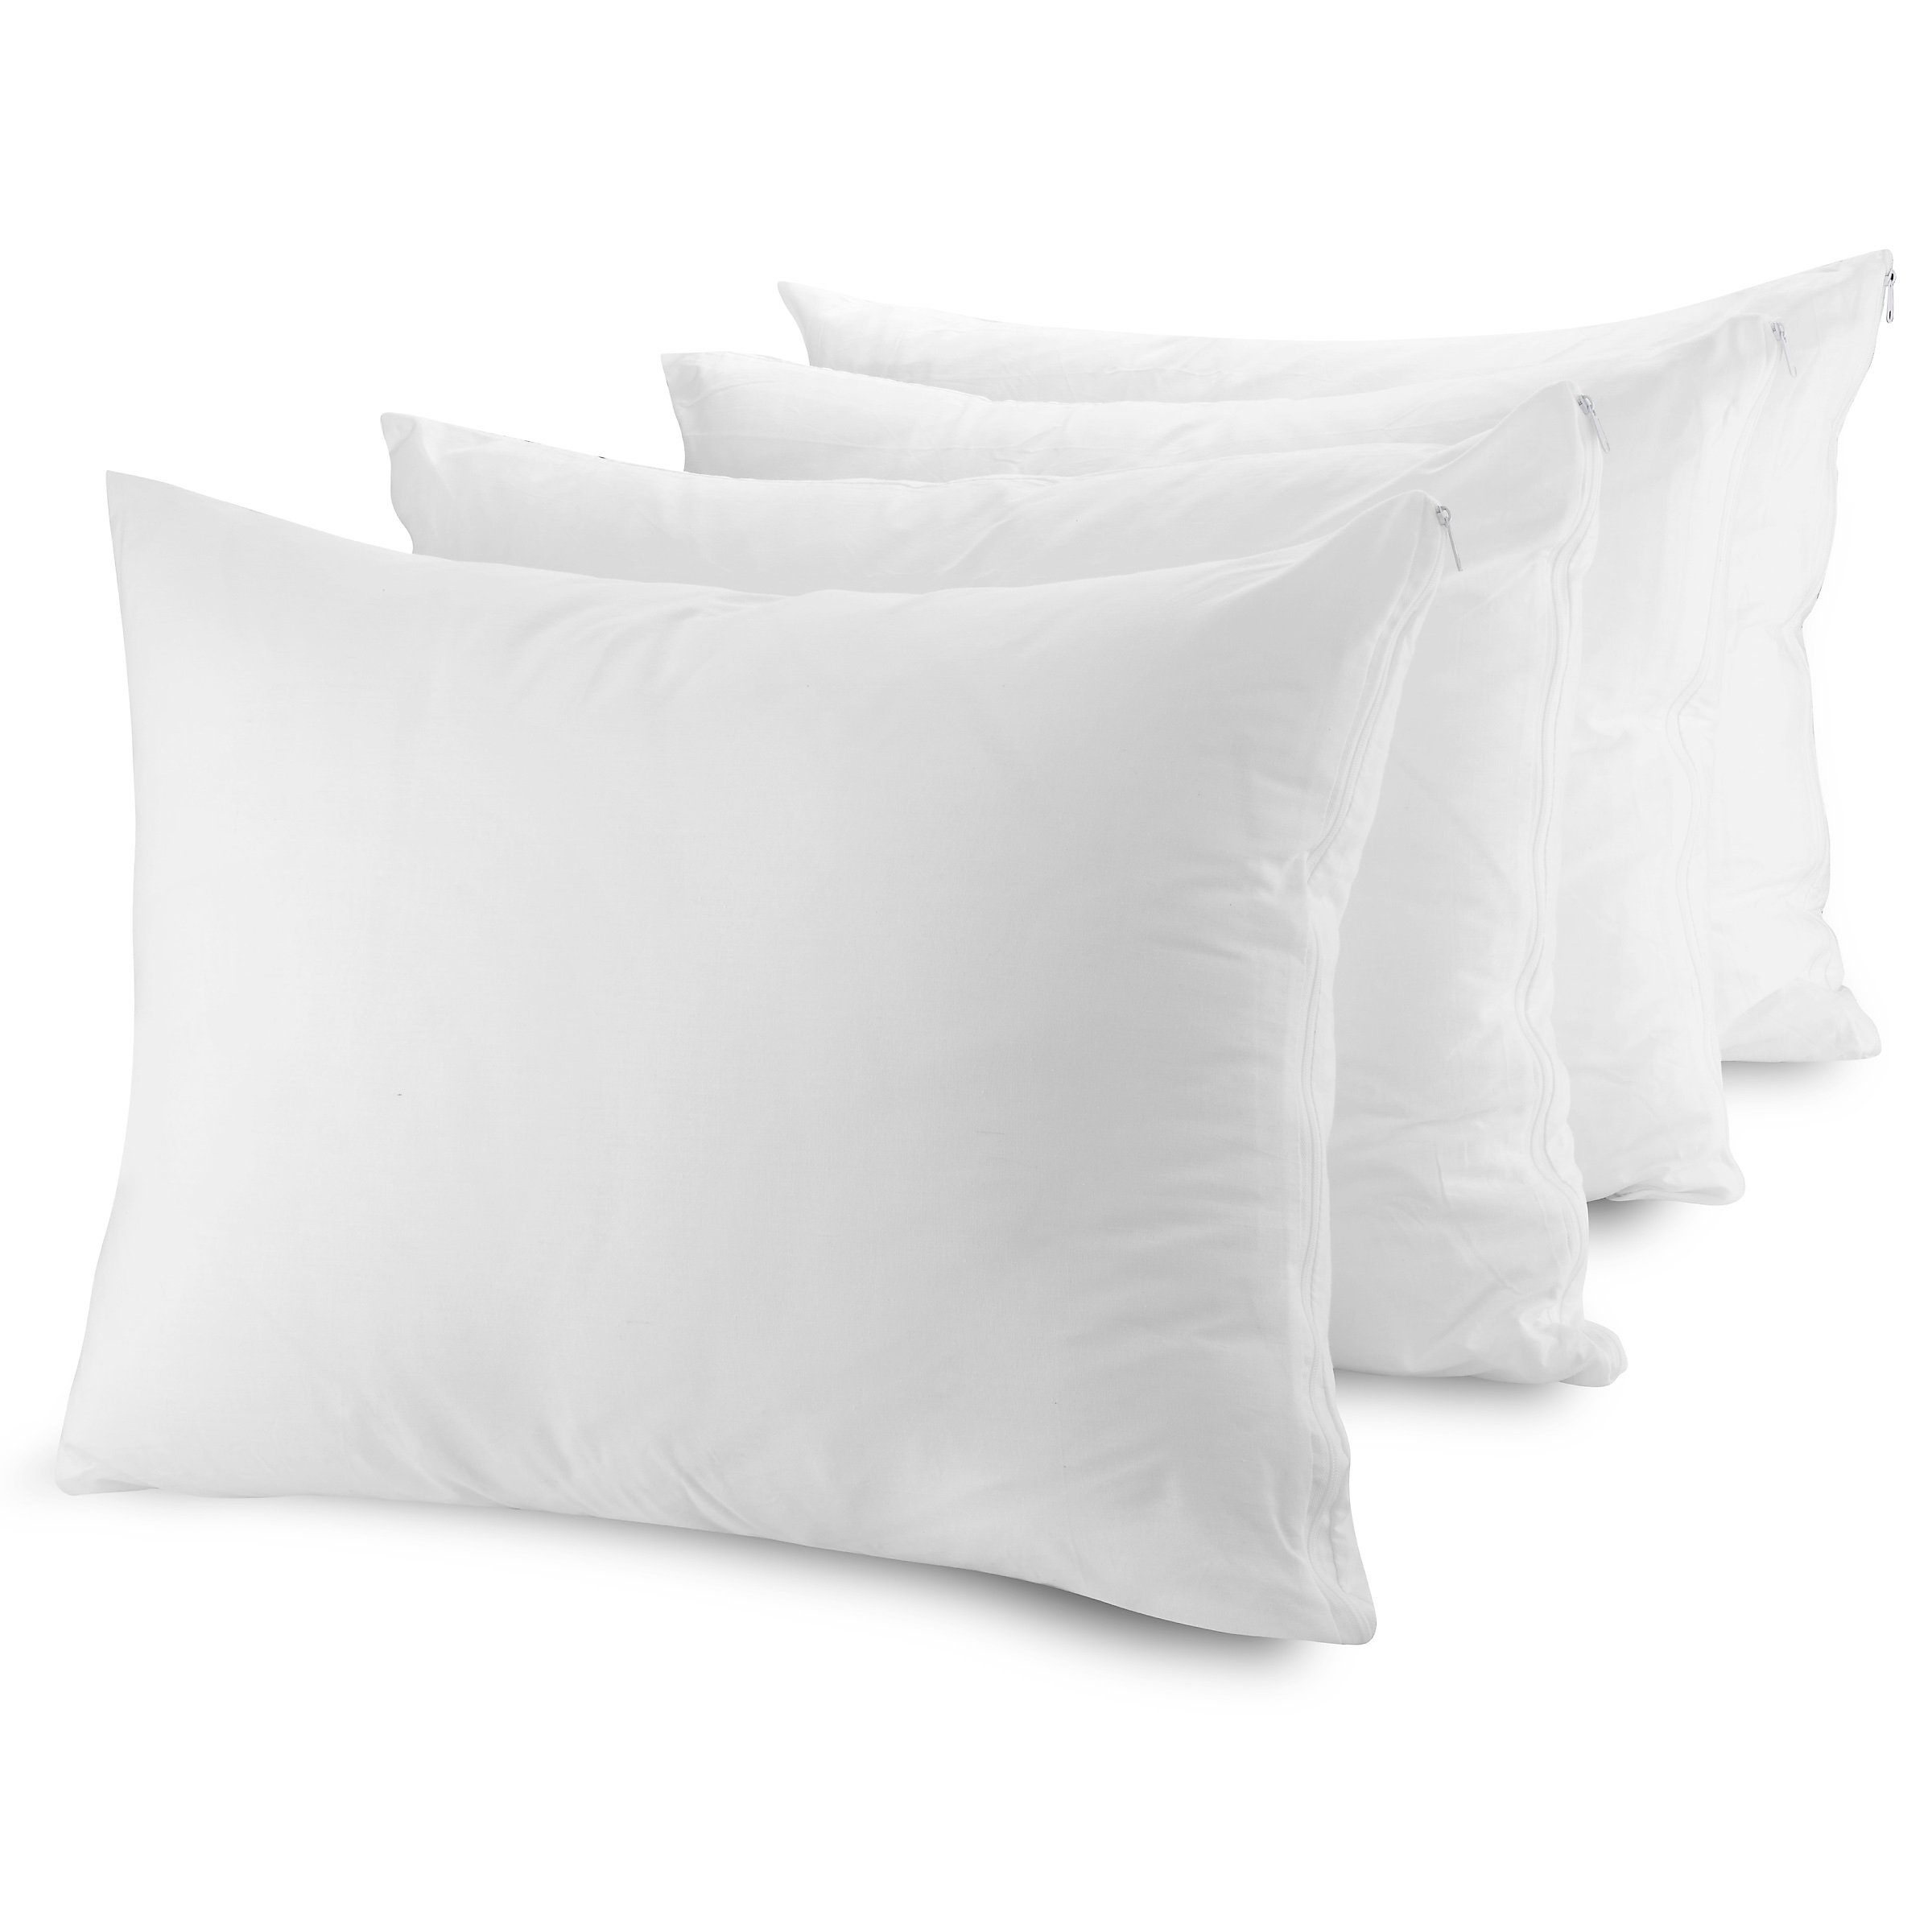 MASTERTEX Zippered Pillow Protectors Hypoallergenic Poly Cotton Breathable Pillow Covers (4 Pack) Soft and Quiet Pillow Encasement Dust Mite Control (Set of 4 - Standard - White)